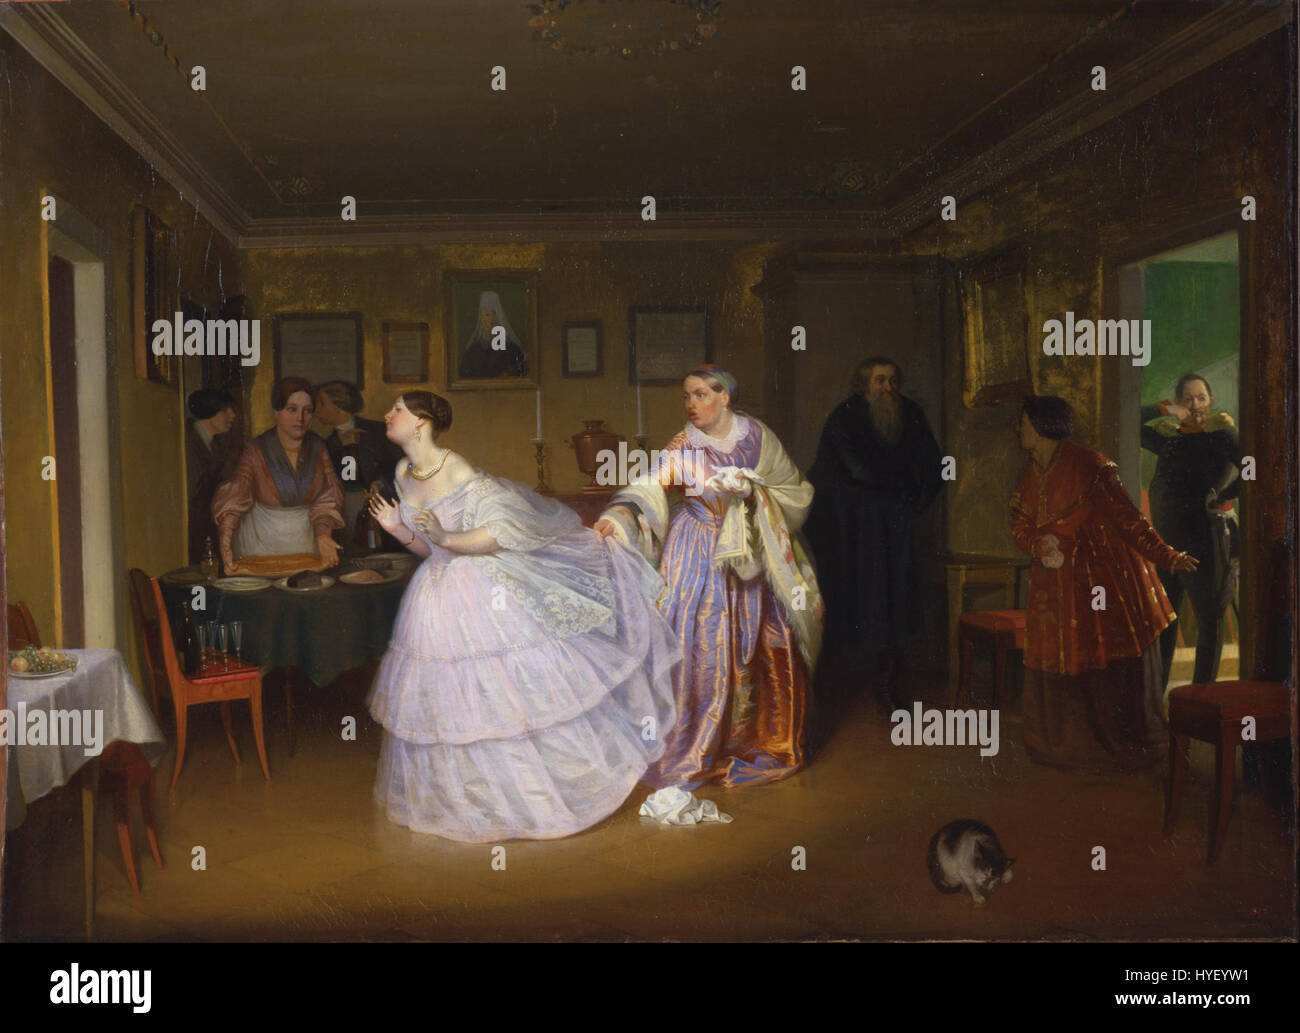 Pavel Fedotov   The Major Makes a Proposal (Inspecting a Bride in a Merchant's House)   Google Art Project - Stock Image